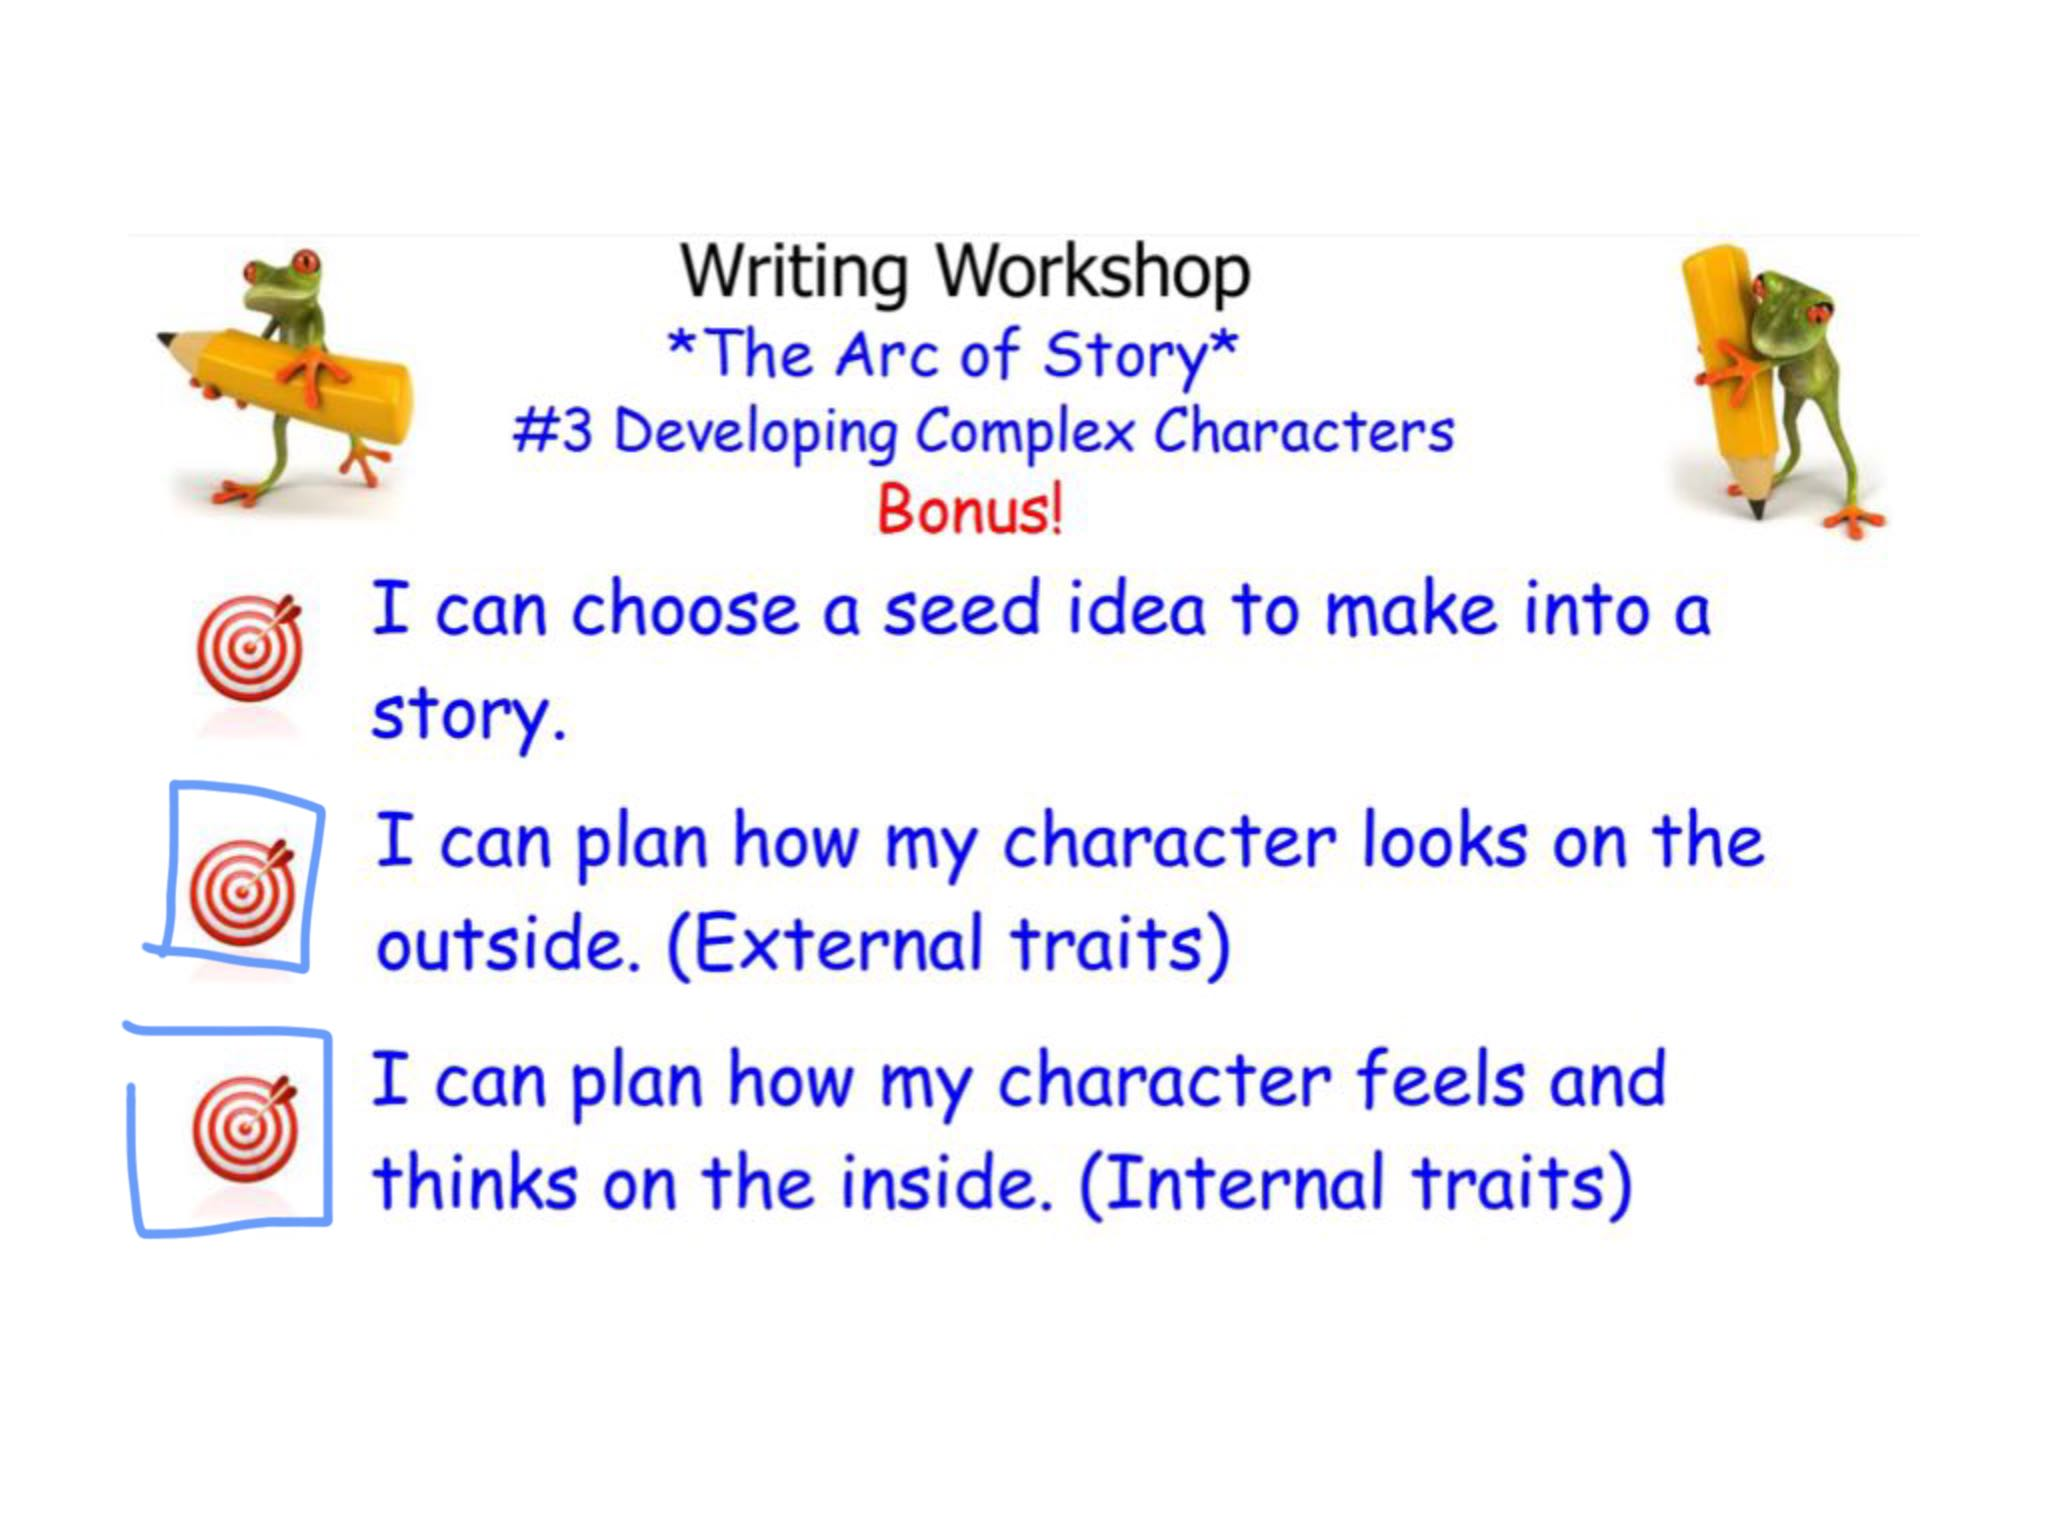 Step by step directions on creating character traits.